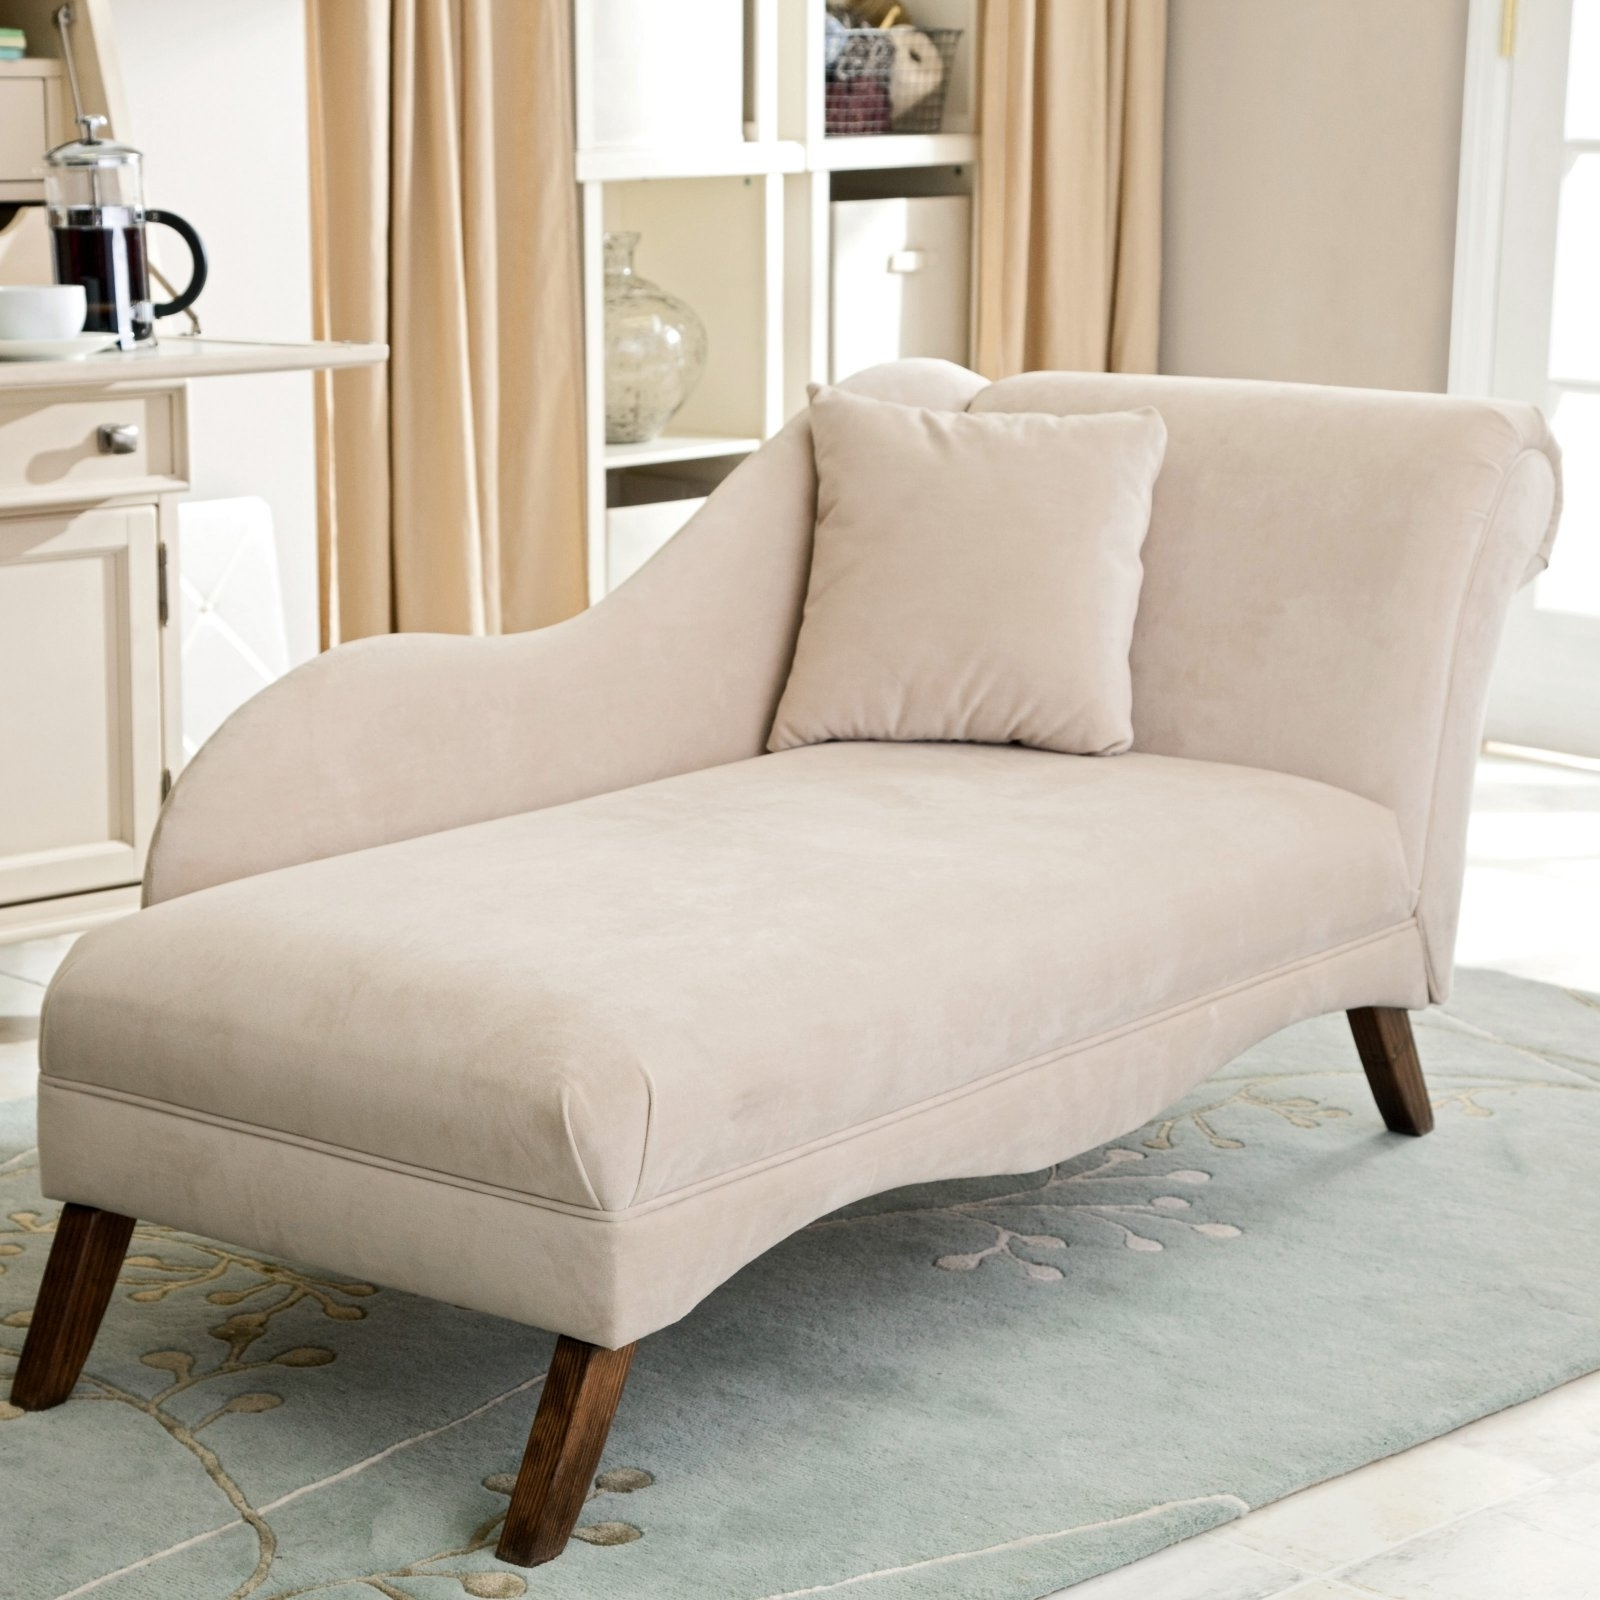 White Lounge Chair Indoor • Lounge Chairs Ideas Inside 2017 White Indoor Chaise Lounges (View 5 of 15)